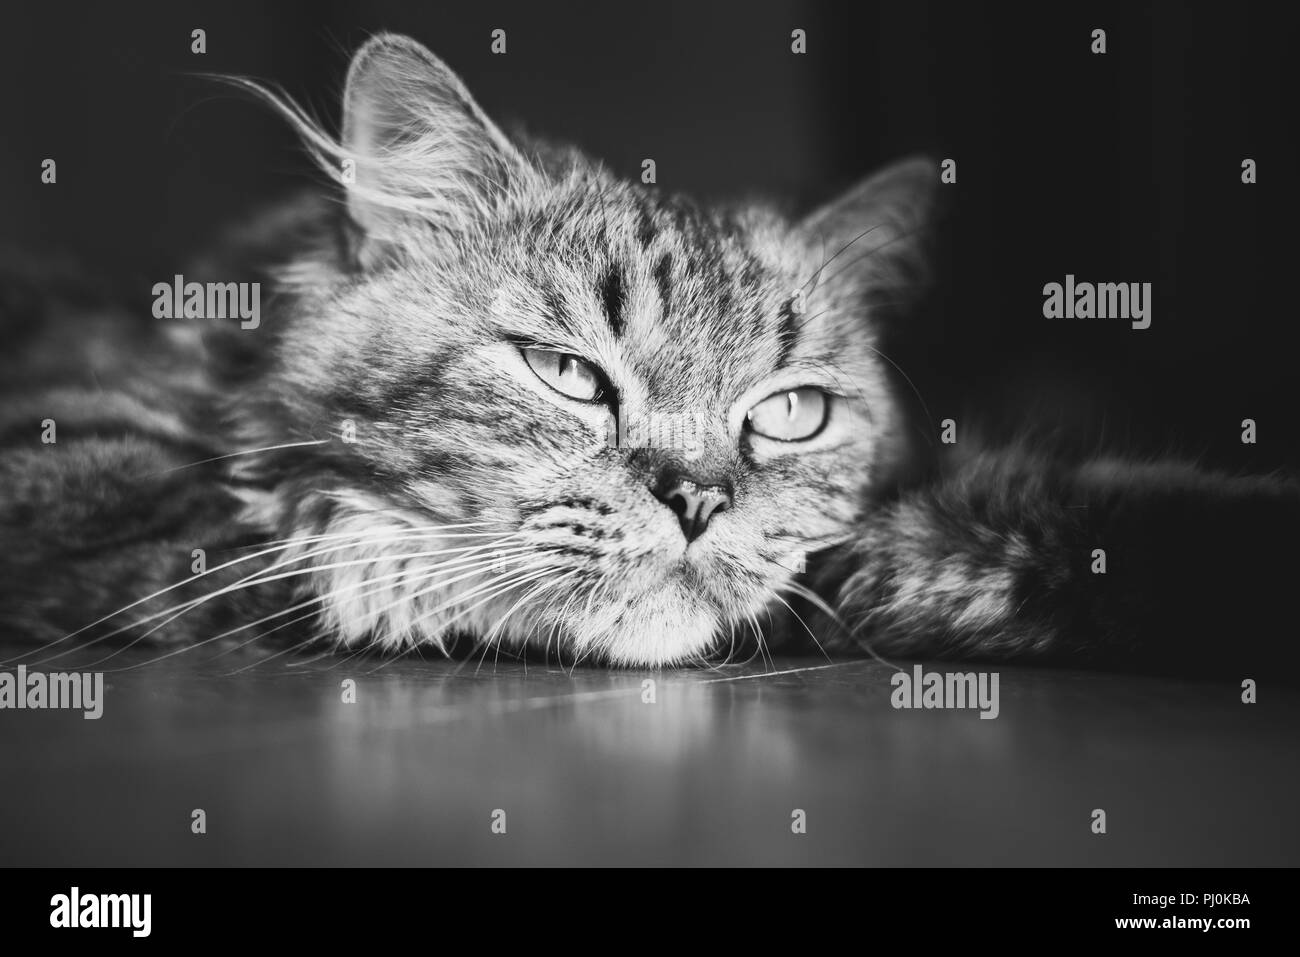 Portrait of a meditative fluffy tabby cat lying down on the floor. Black and white, close up - Stock Image